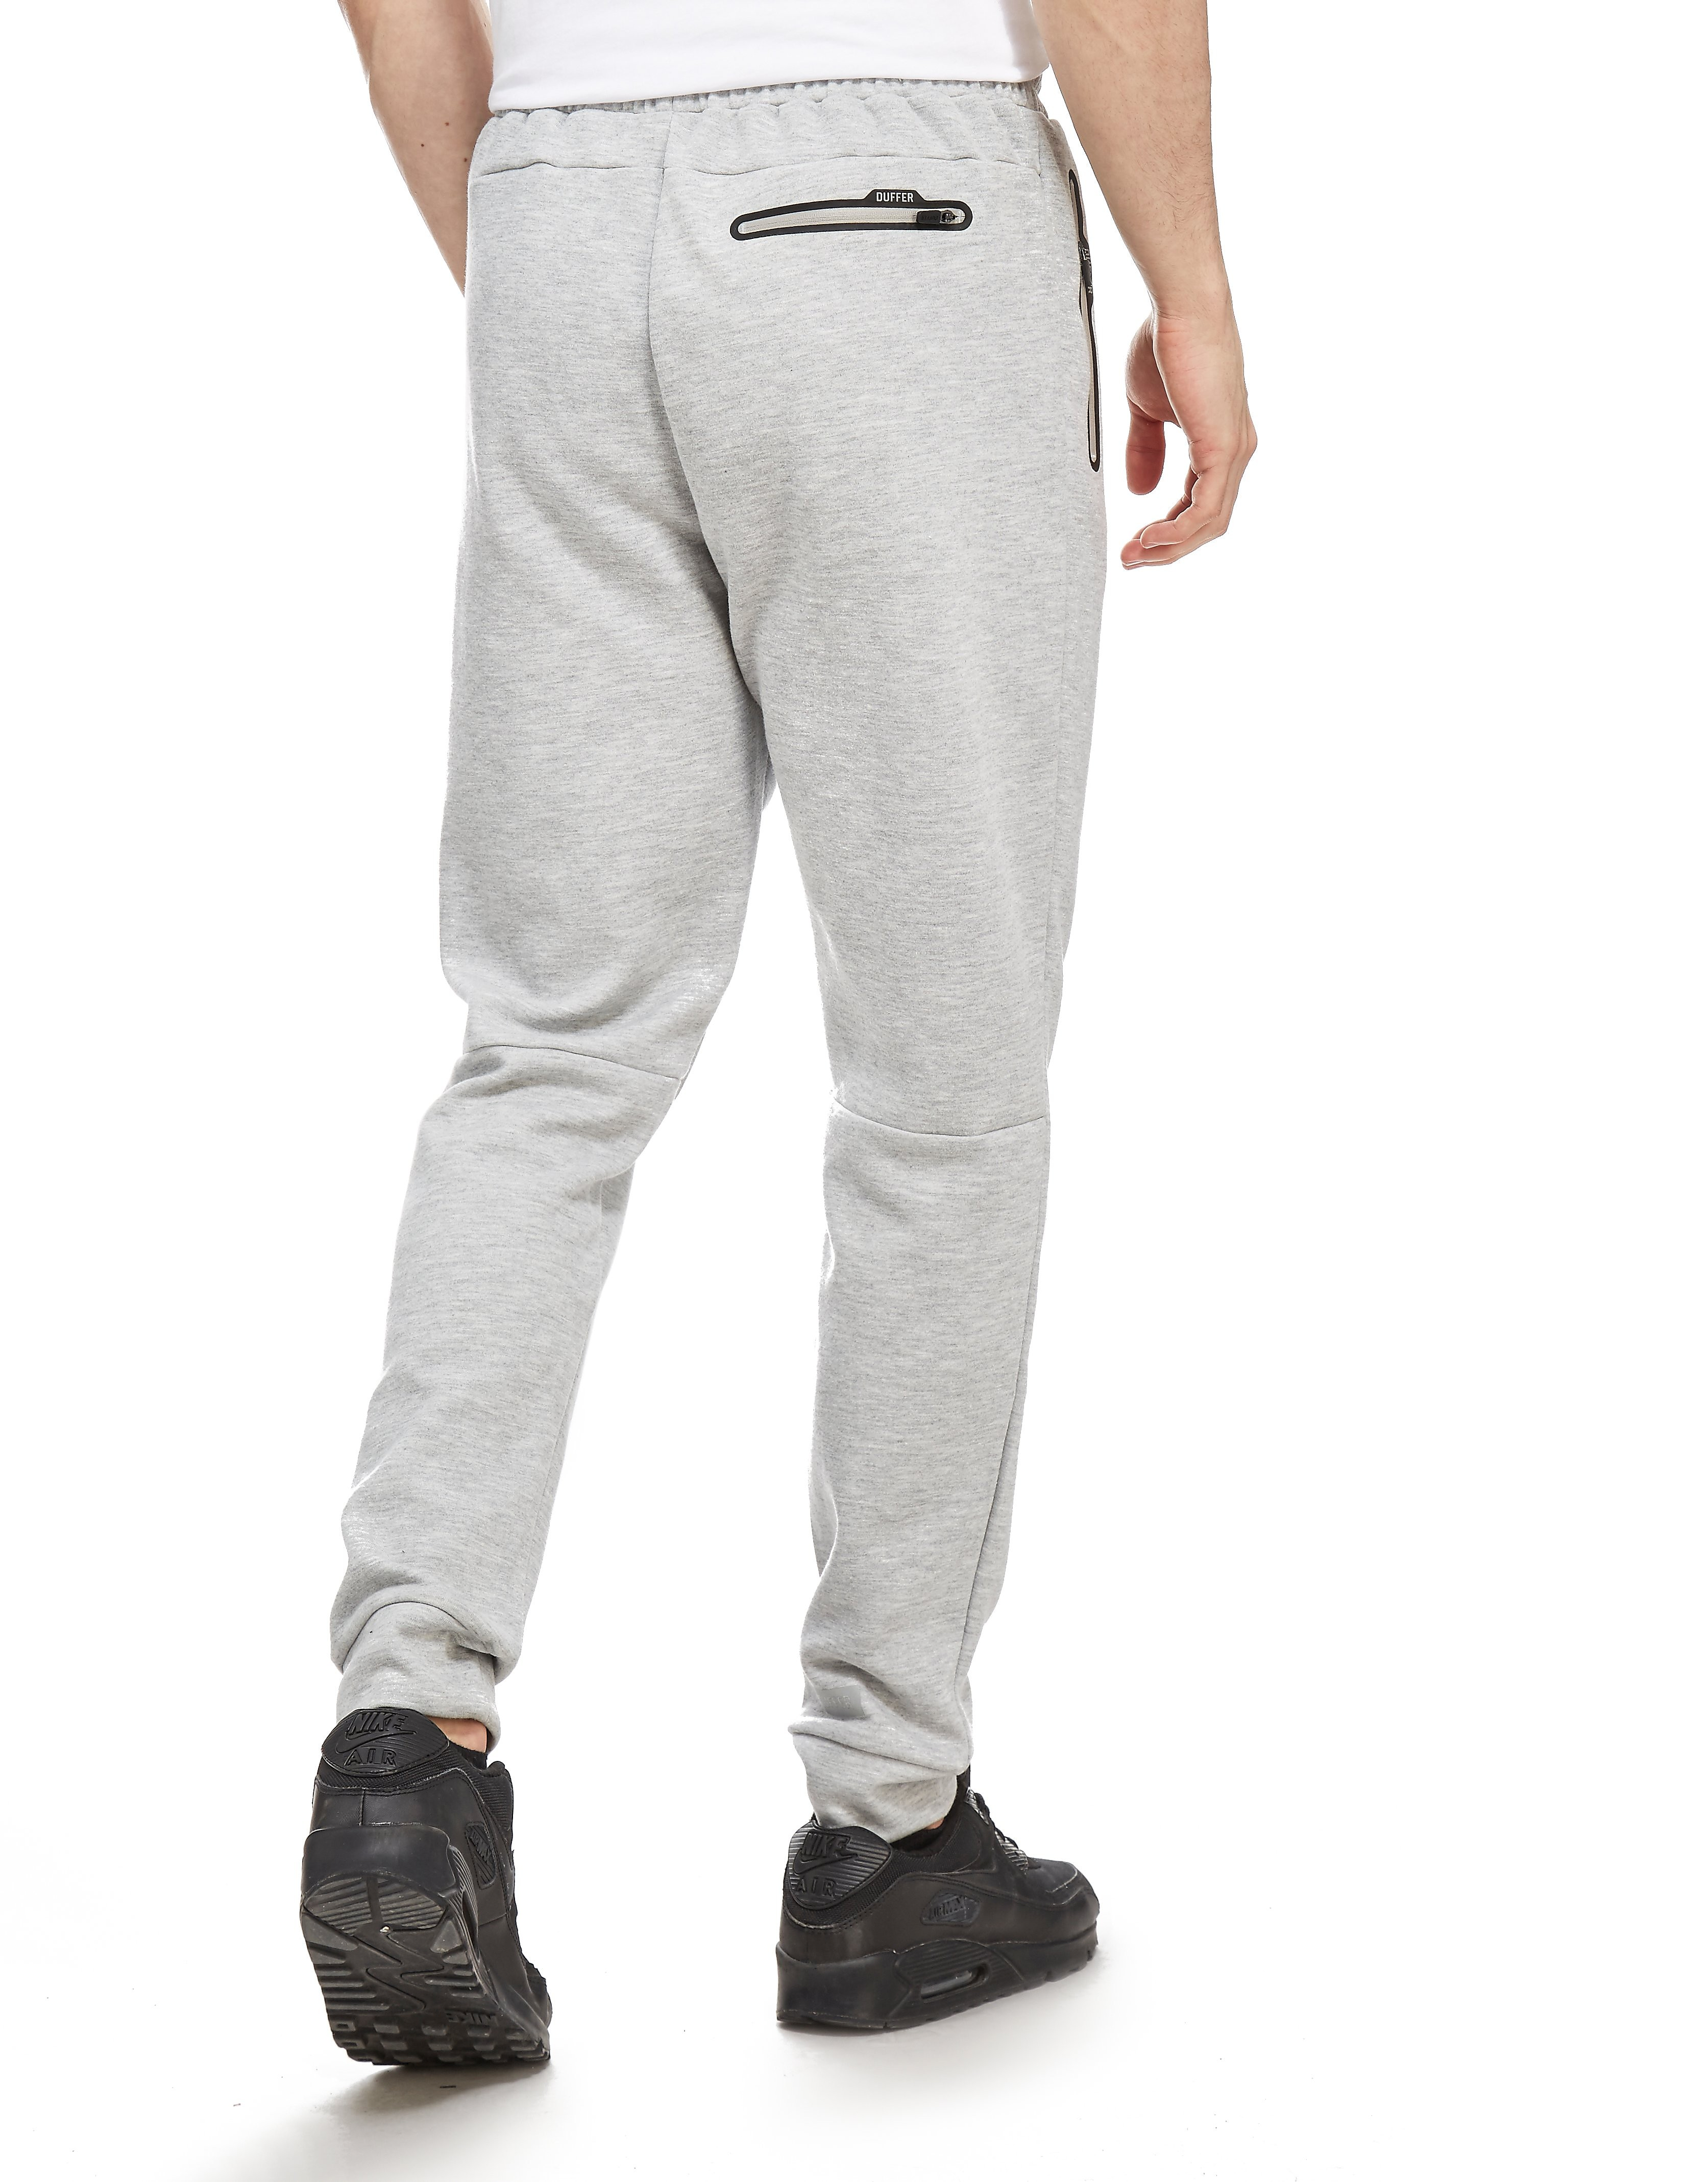 Duffer of St George Structure Jogging Pants